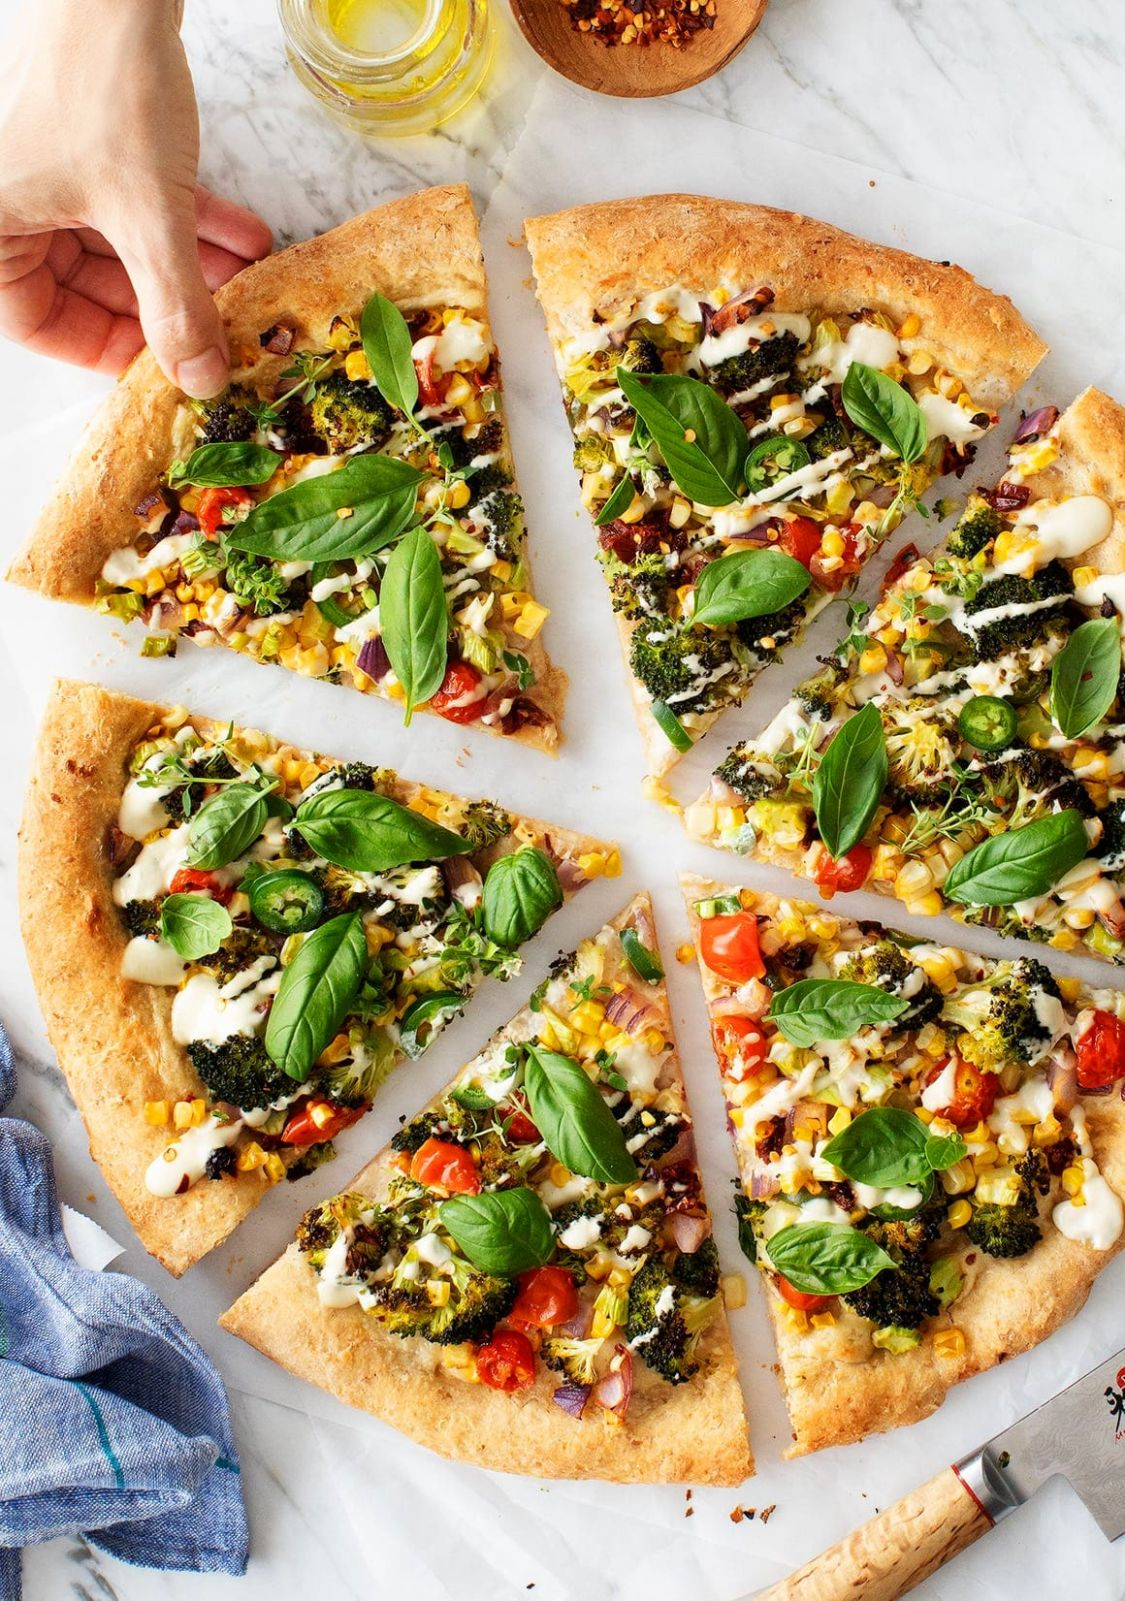 Best Vegan Pizza - Pizza Recipes Toppings Gourmet